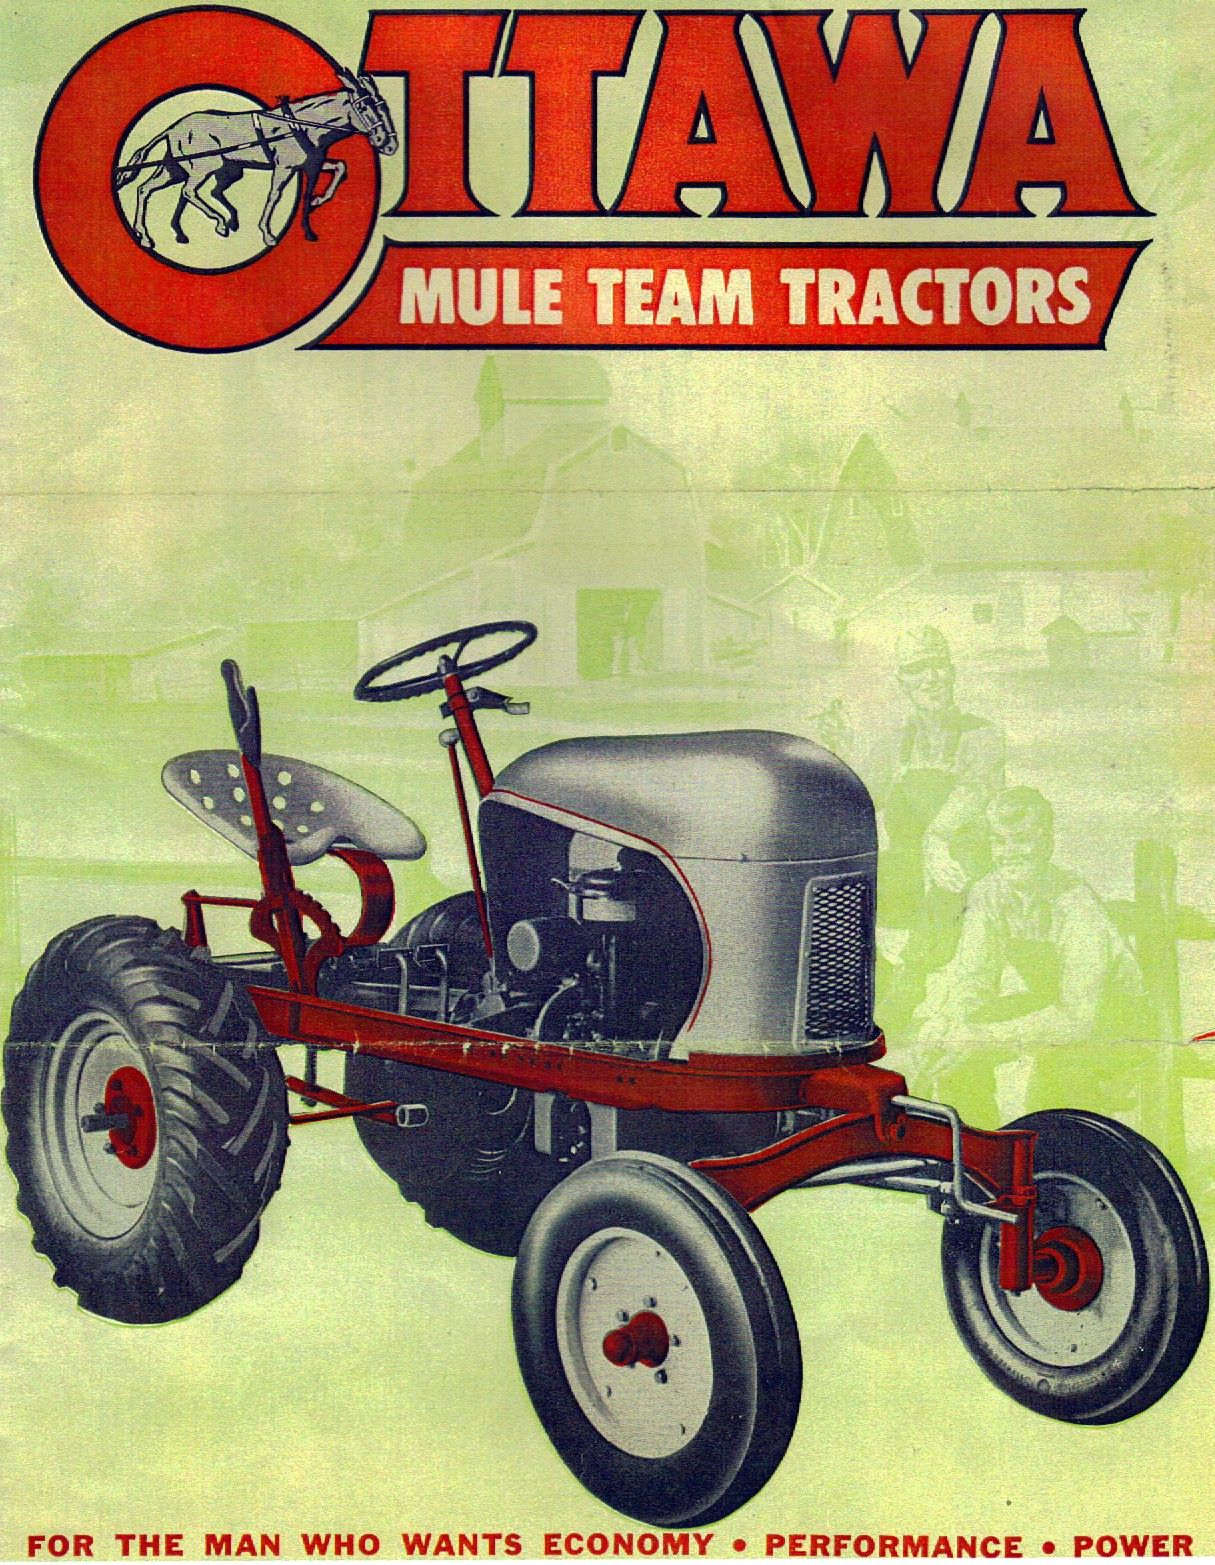 Old Tractors For Sale : tractors, Ottawa, Tractor, Sales, Literature, Tractors,, Tractors, Sale,